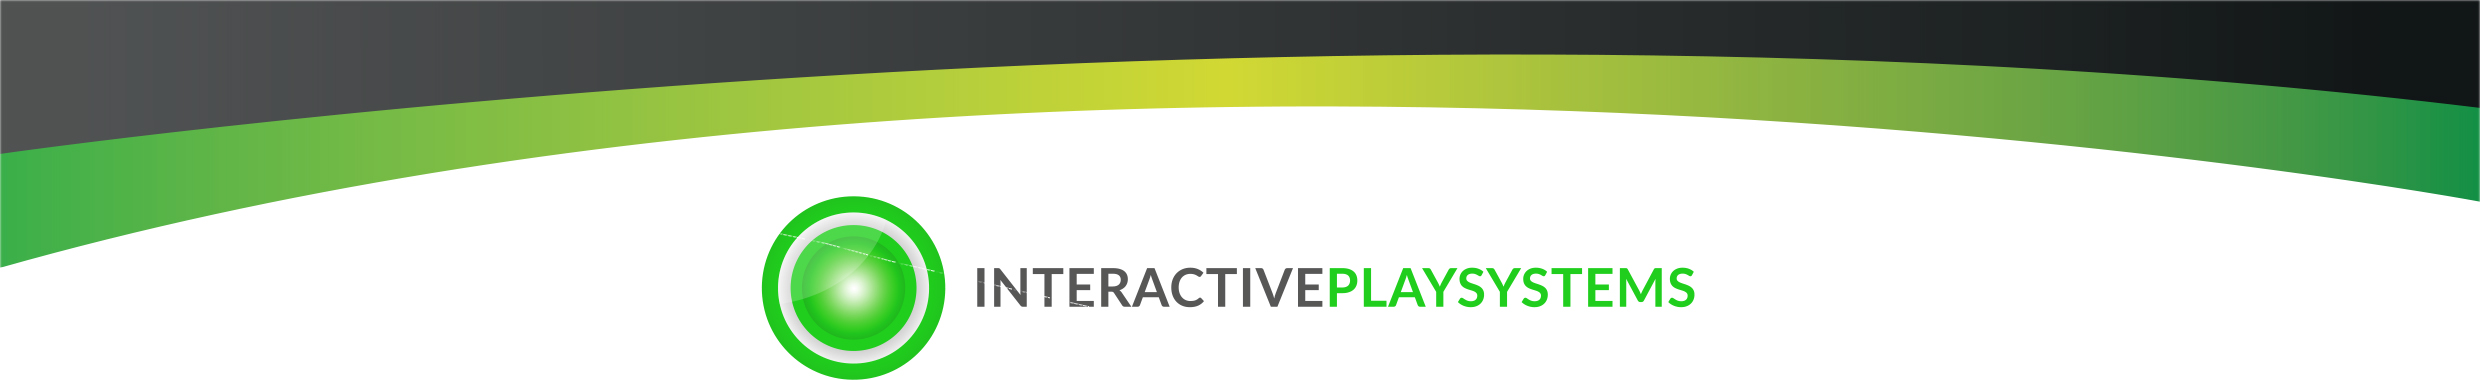 Interactiveplaysystems